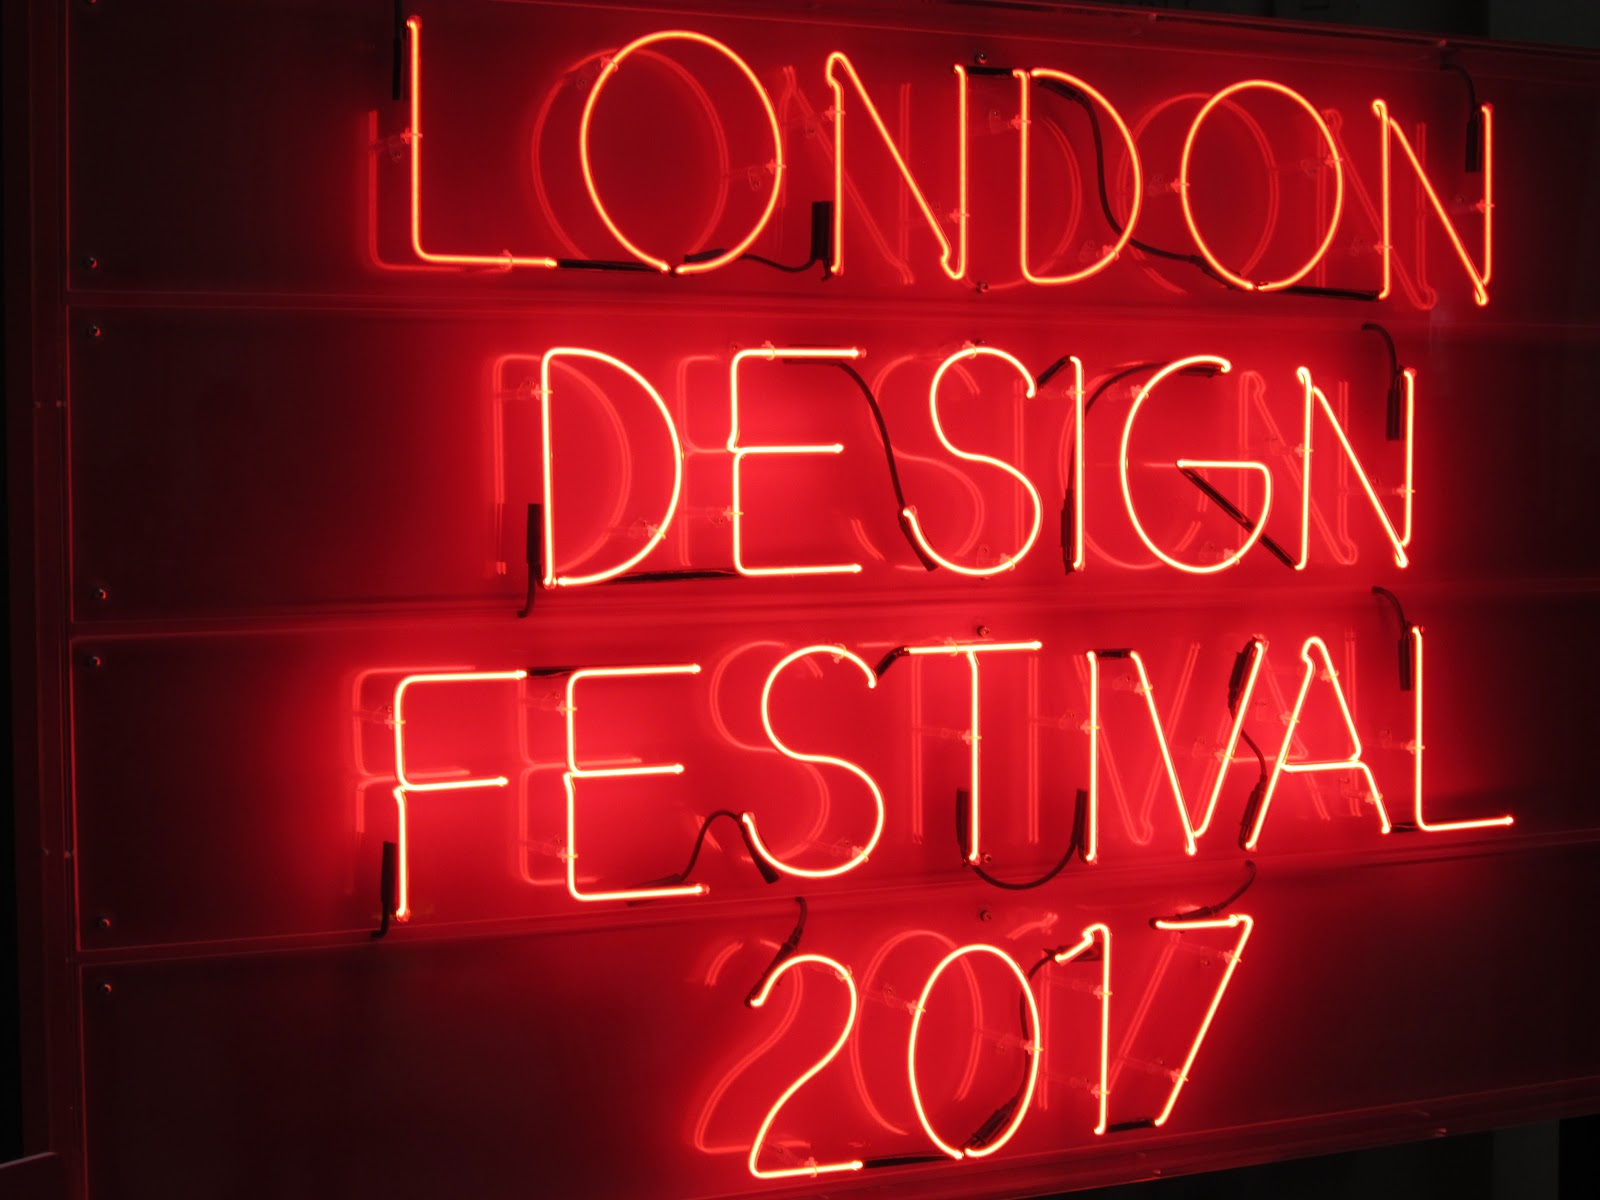 joseph scissorhands: London Design Festival at the V&A 2017